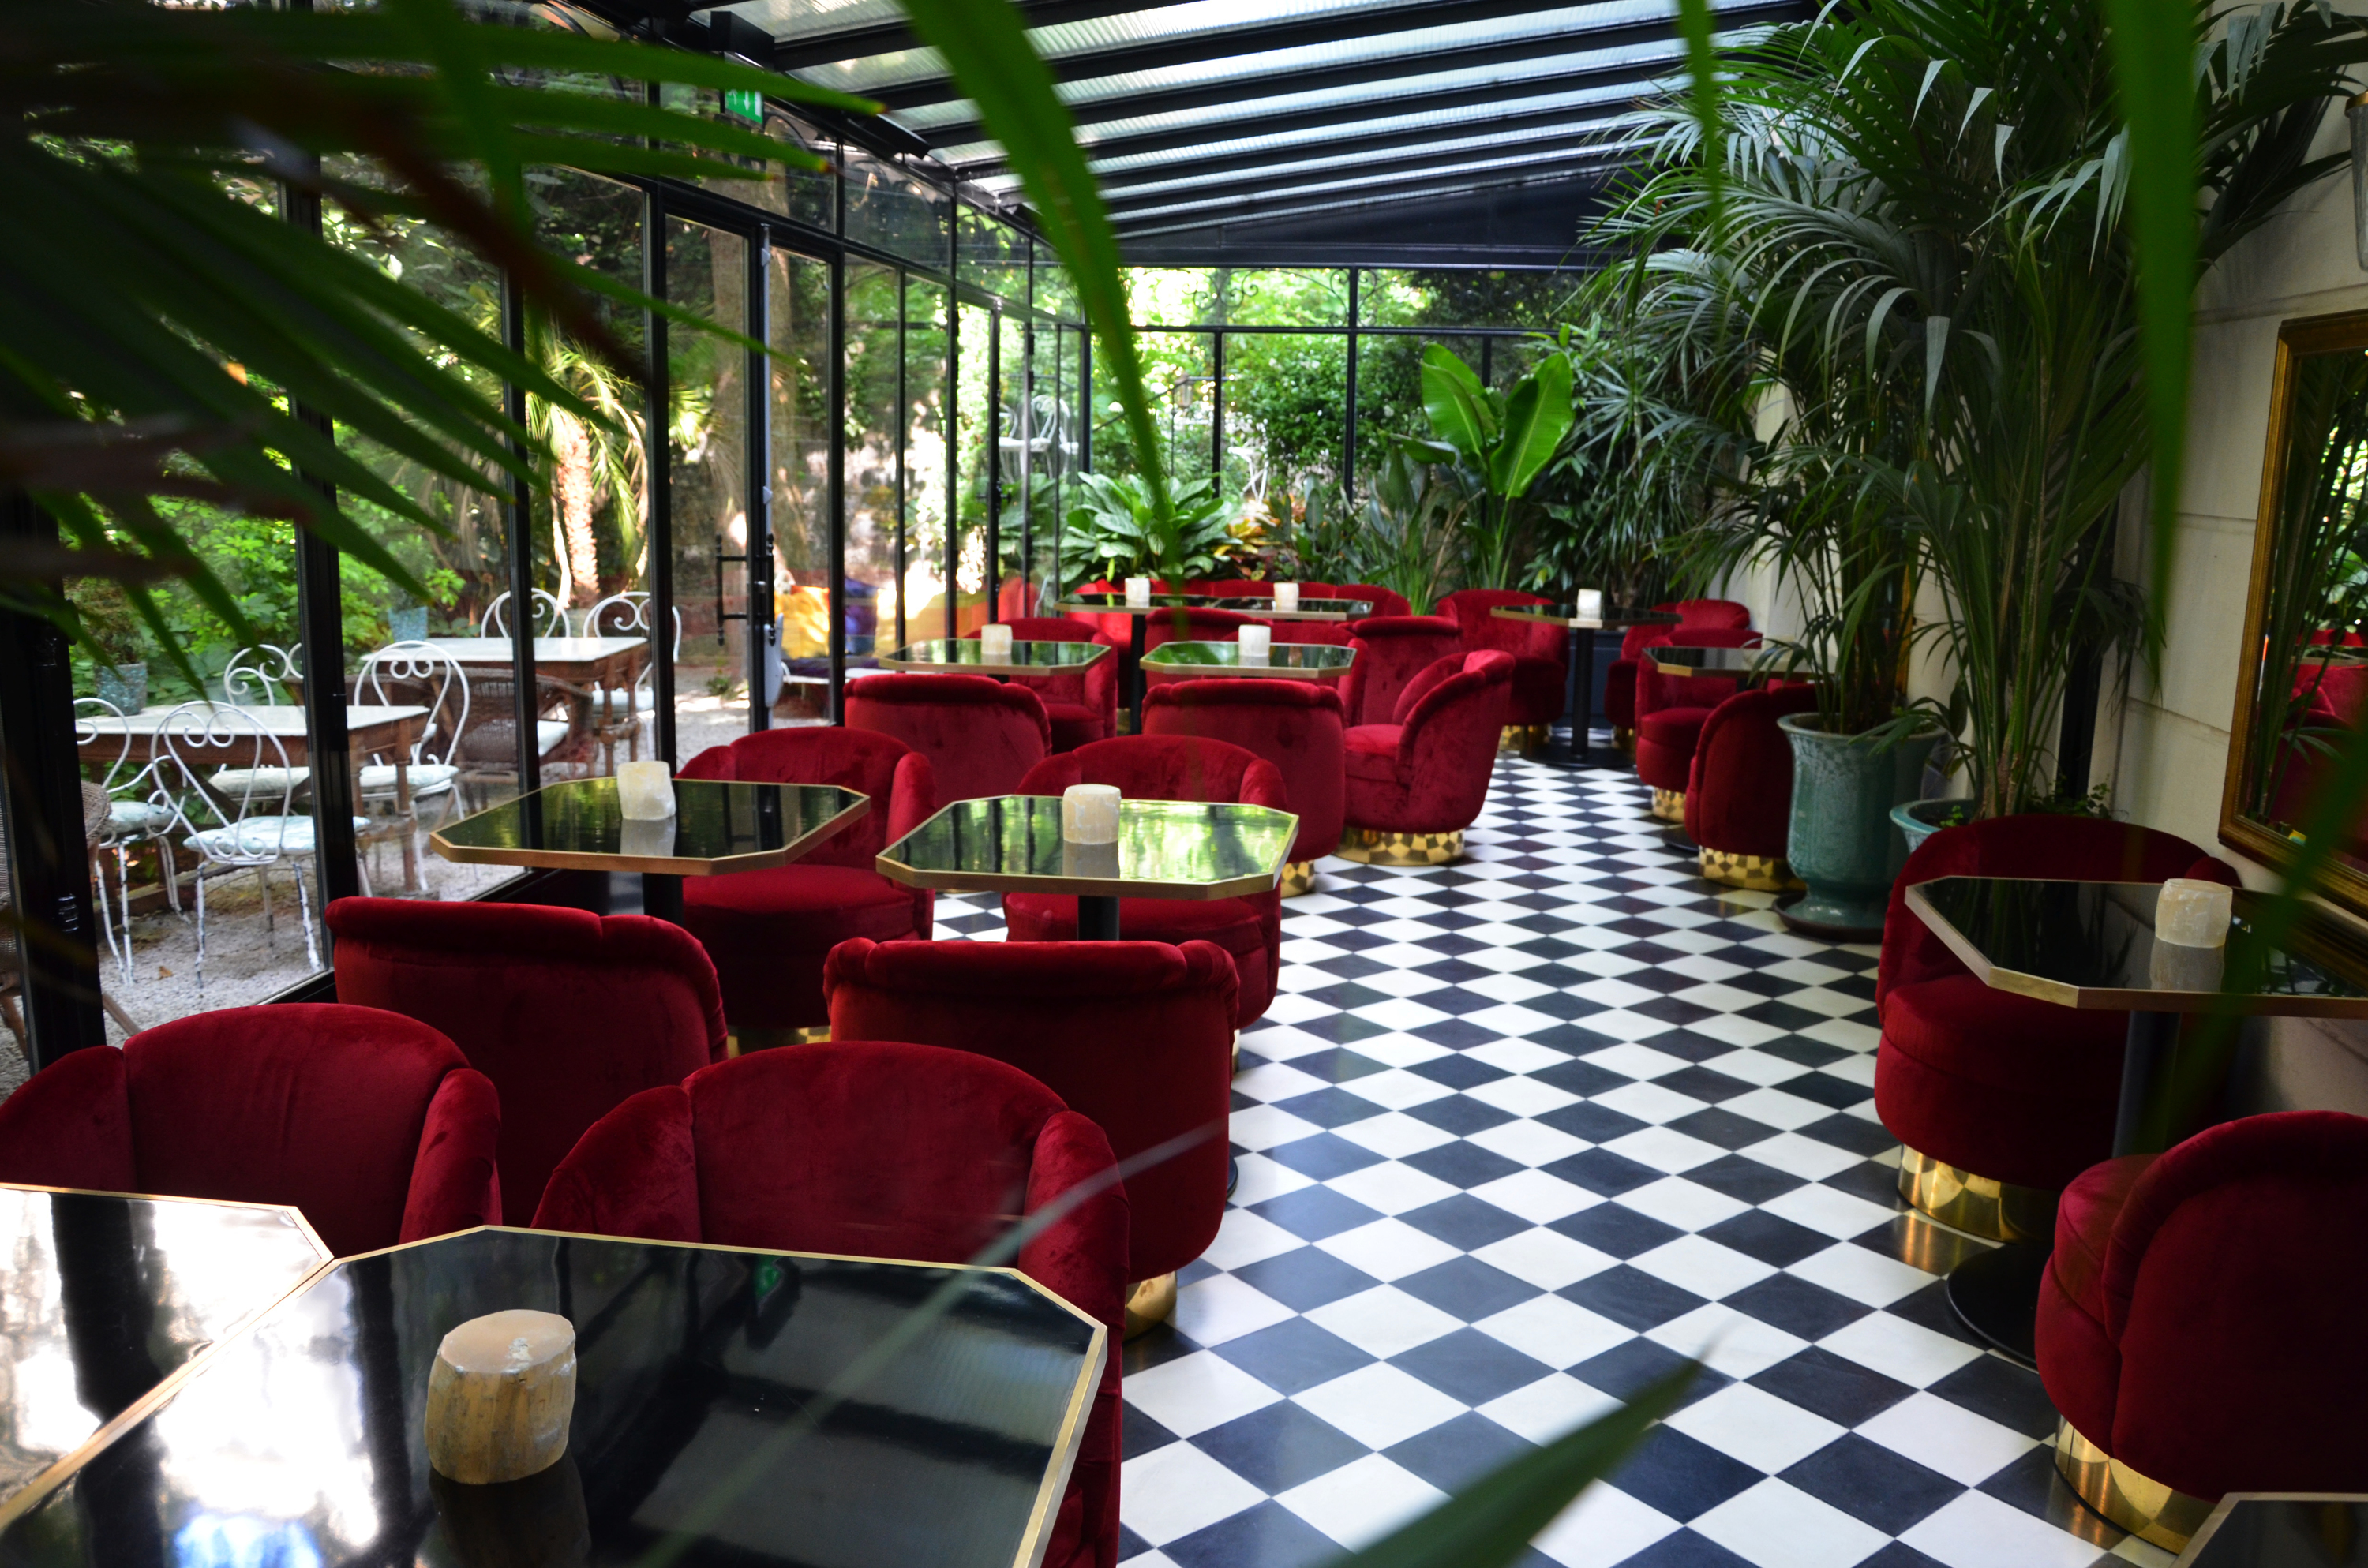 Le tr s particulier bars and pubs in montmartre paris for Restaurant dans jardin paris